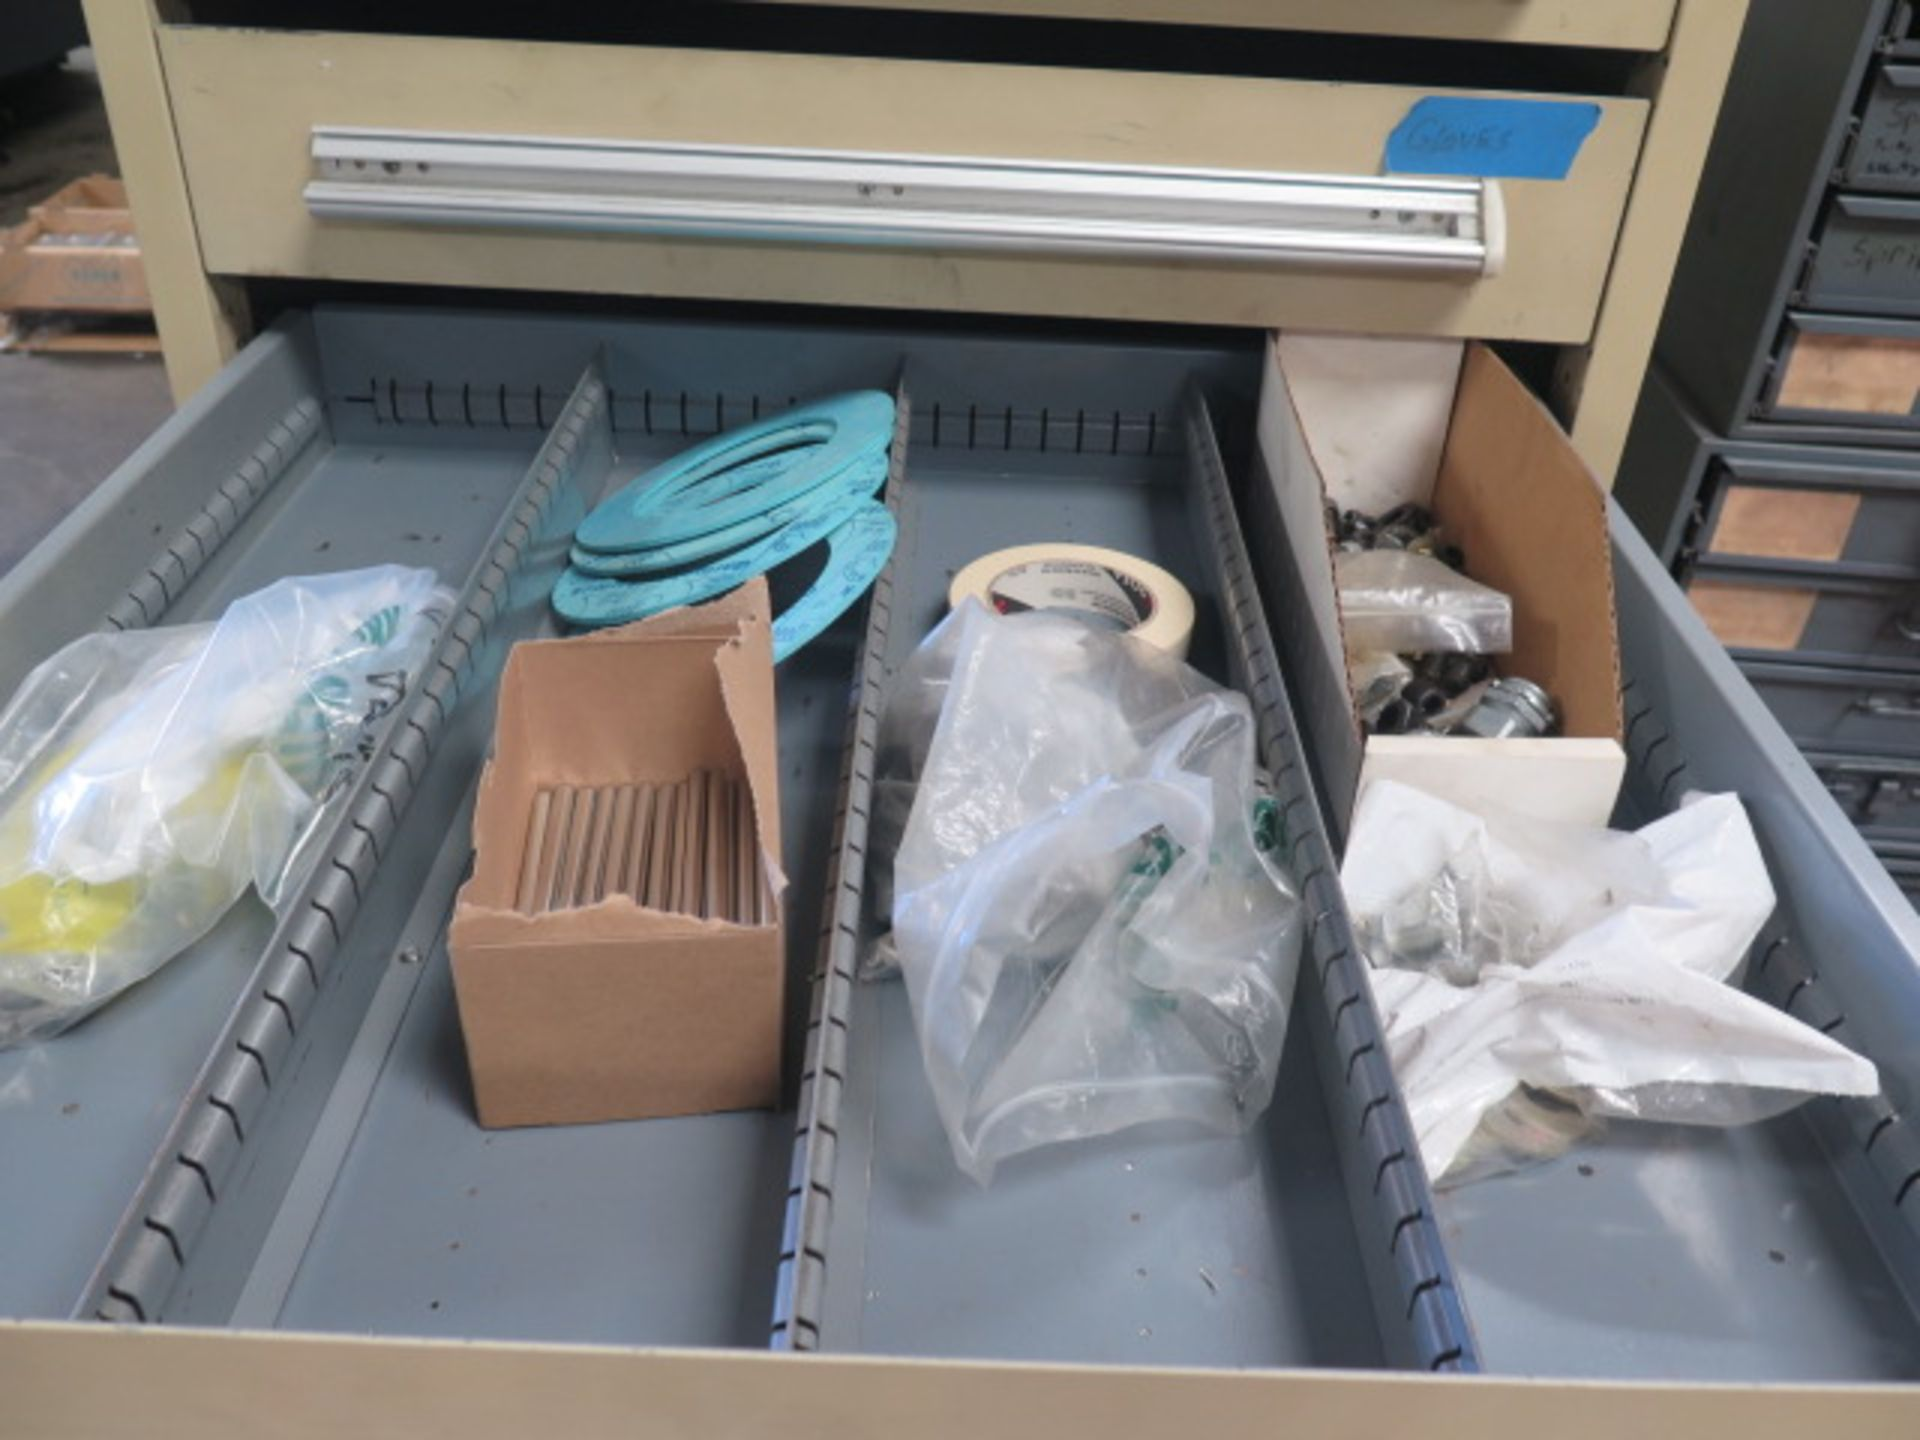 10-Drawer Tooling Cabinet w/ Hardware (SOLD AS-IS - NO WARRANTY) - Image 4 of 10